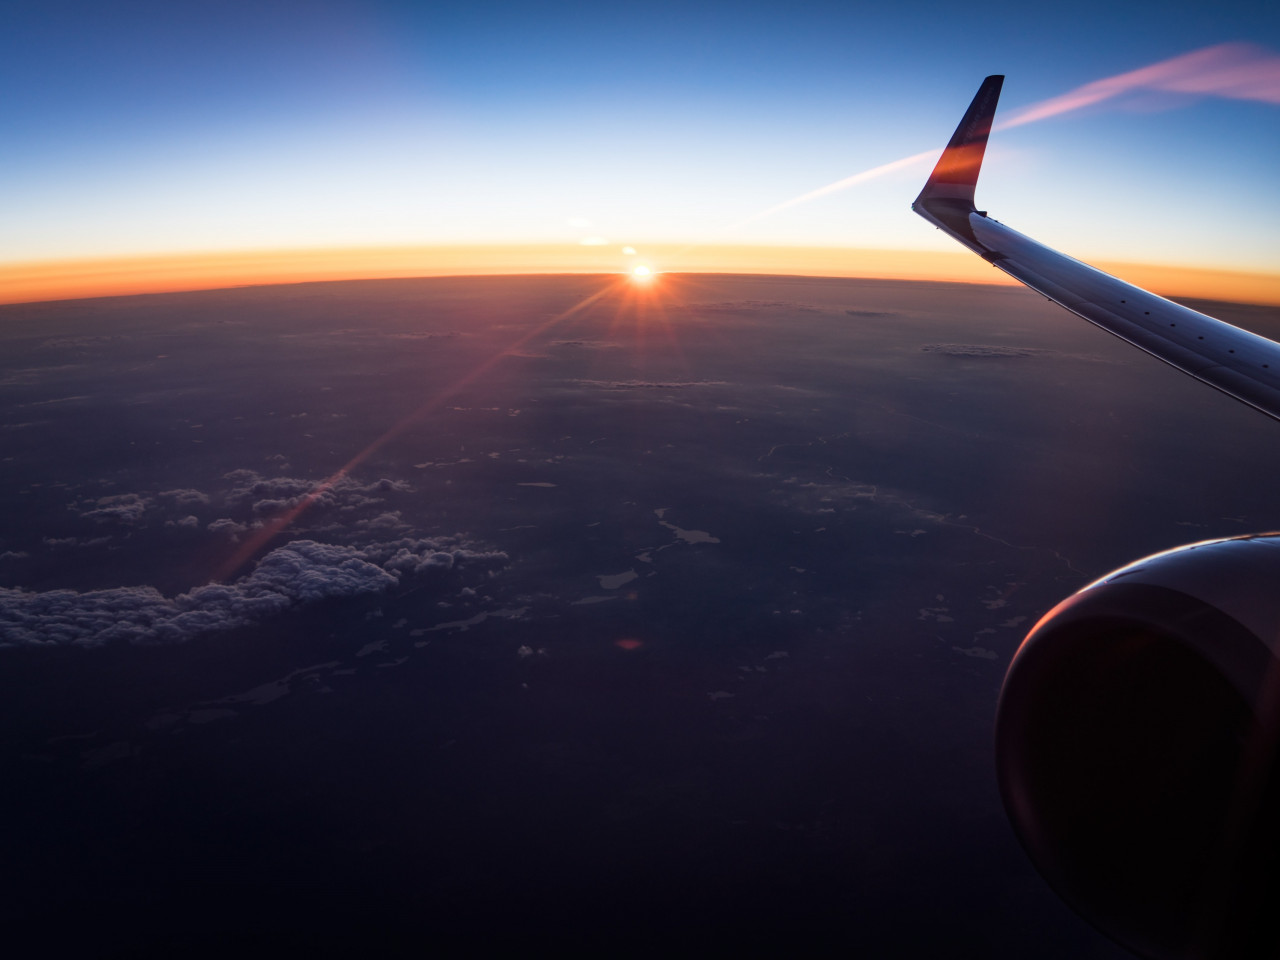 In the plane watching the sunset wallpaper 1280x960